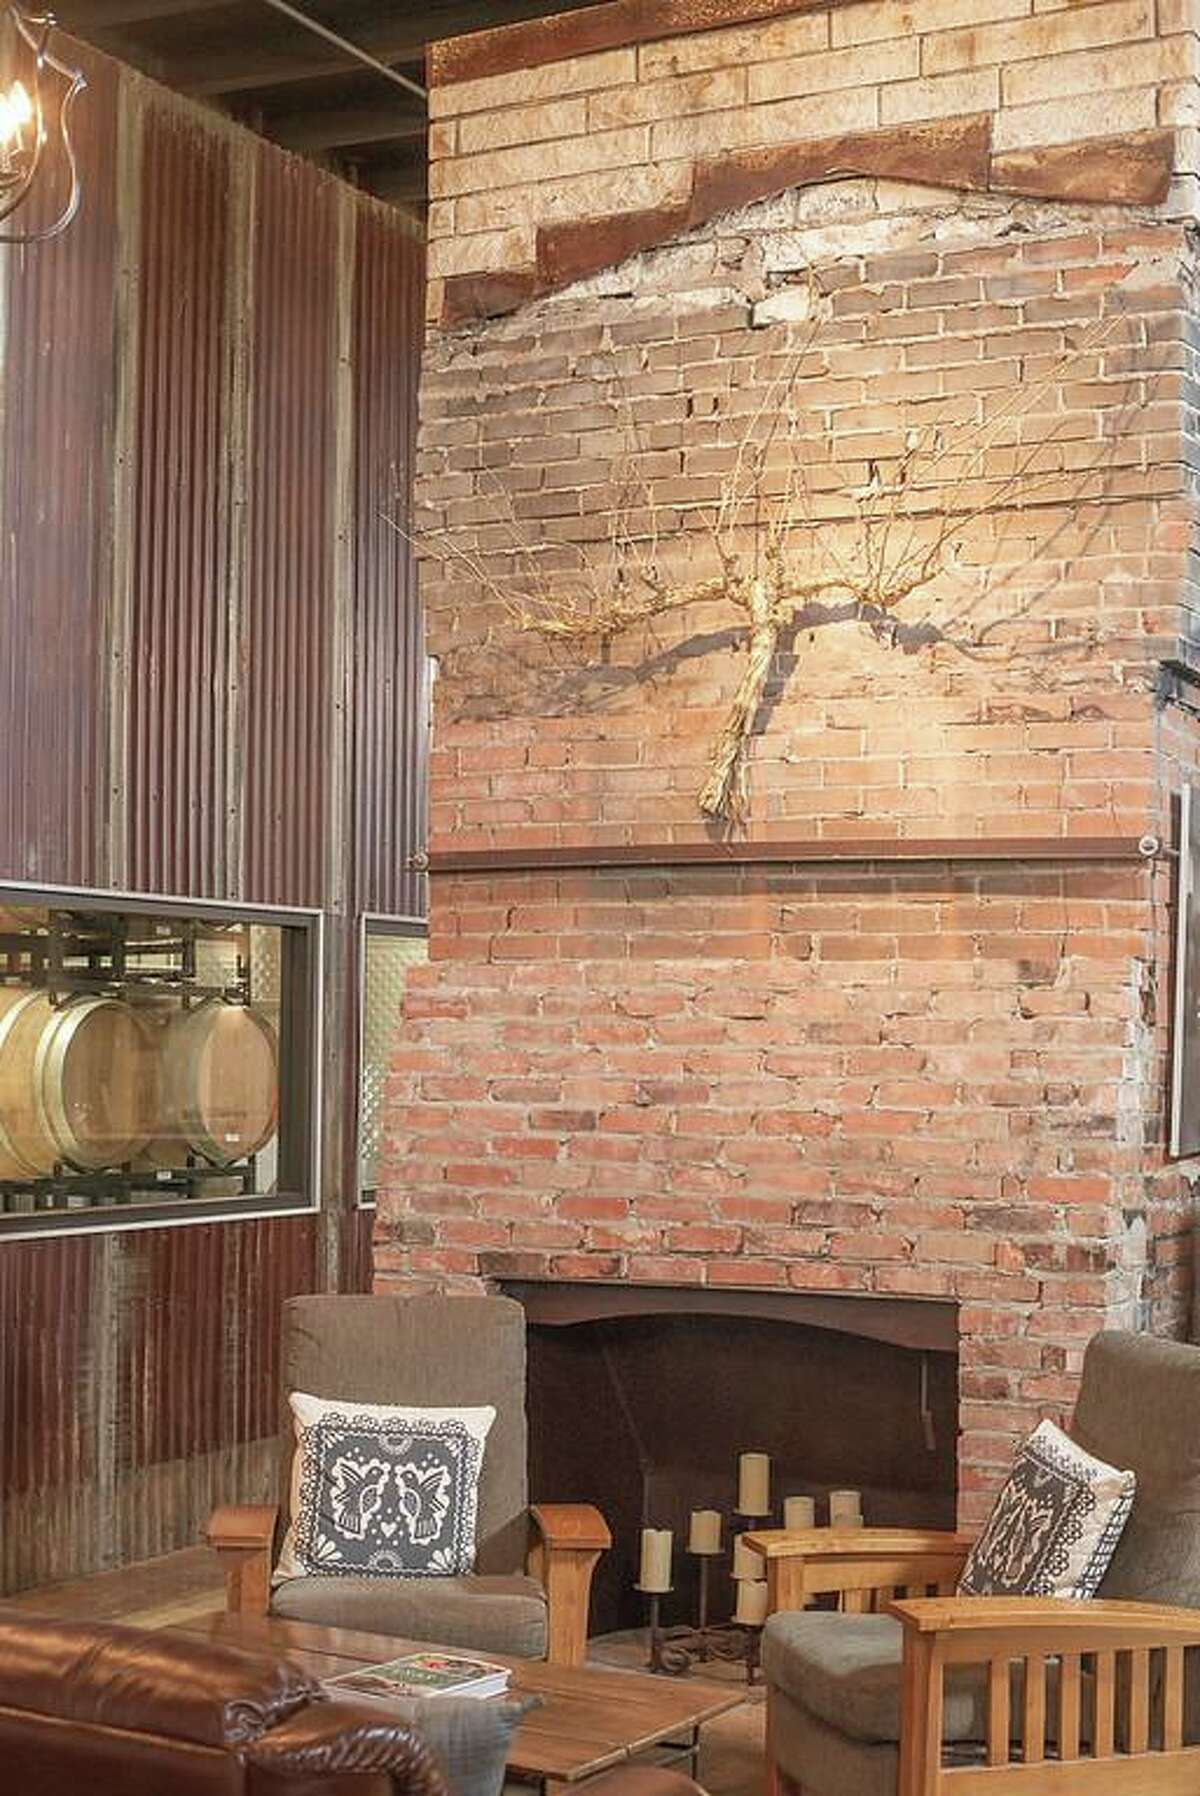 The winery tasting room was built around the charred foundation and fireplace of a hill country home providing an unusual décor to the rustic décor of Kerrville Hills Winery.